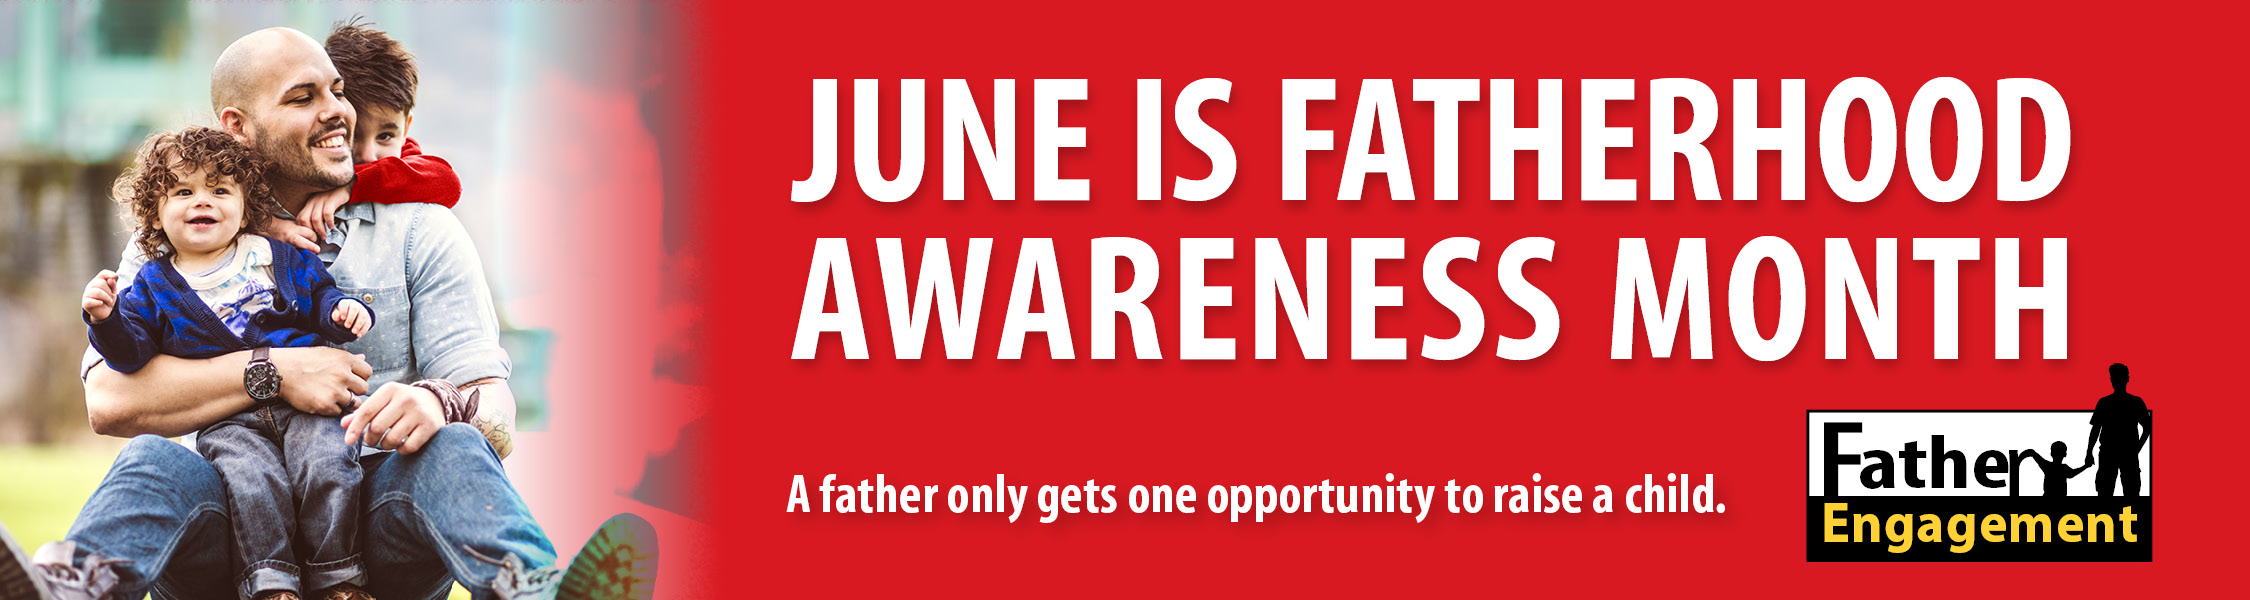 June is Fatherhood Awareness Month banner; image of father and children